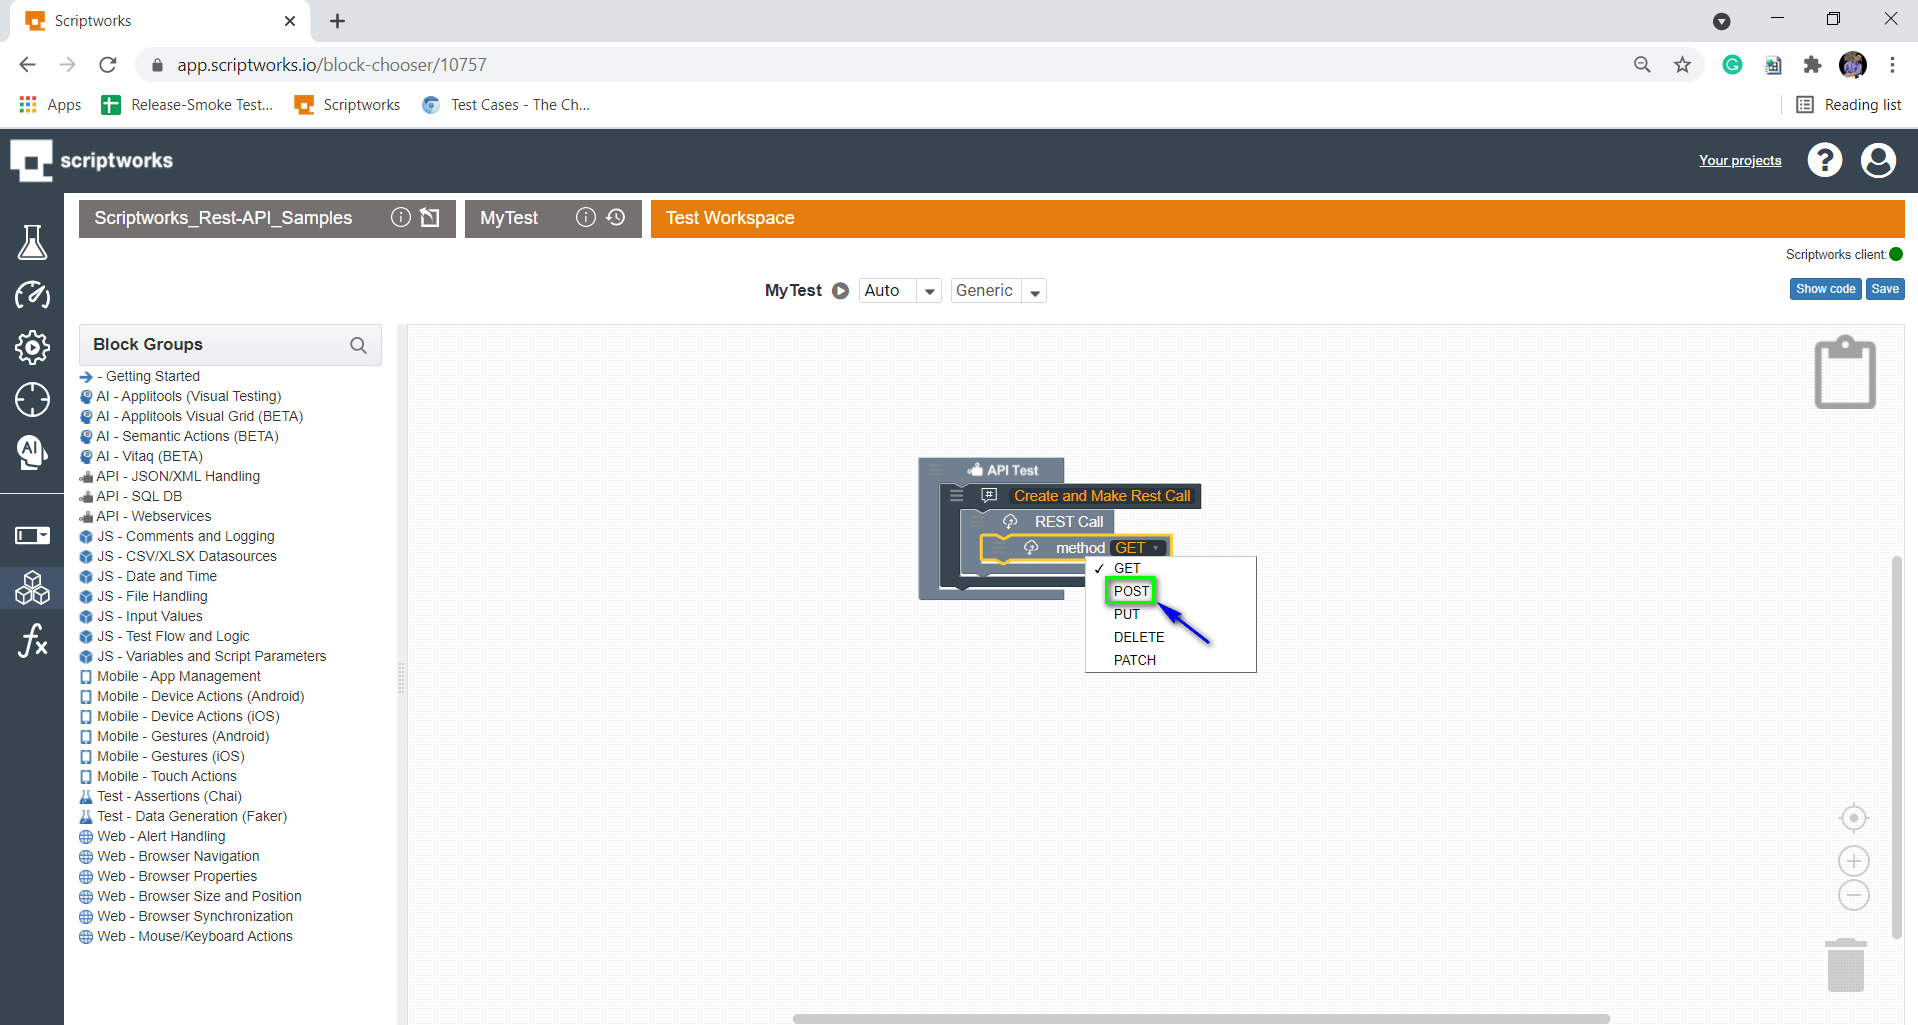 Select HTTP Verb POST from the Drop Down